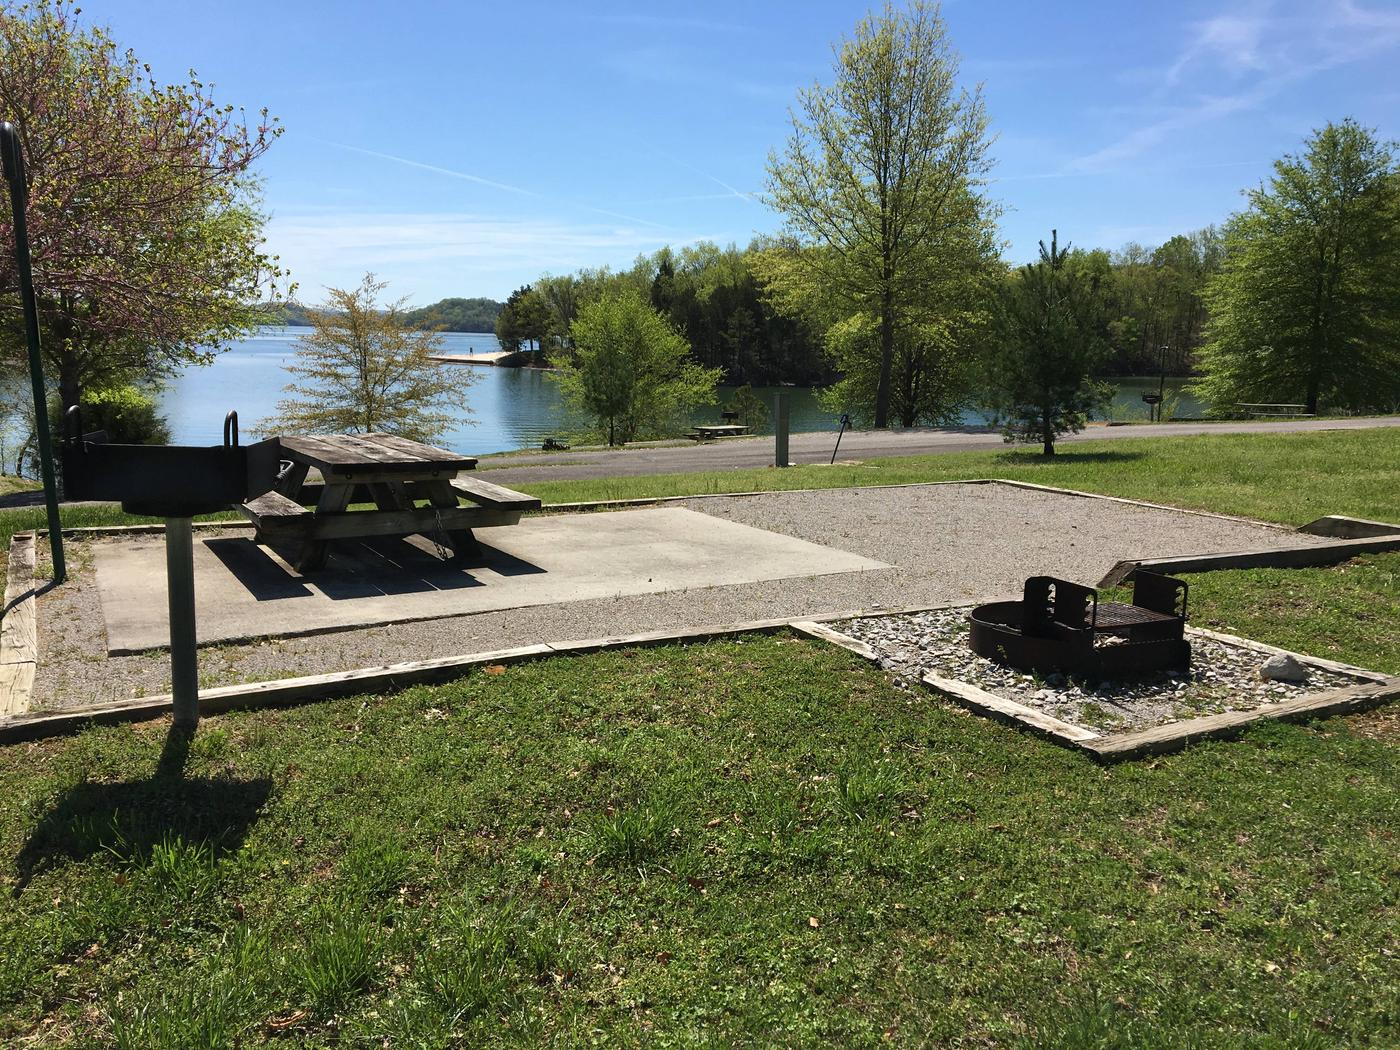 LILLYDALE CAMPGROUND SITE # 23